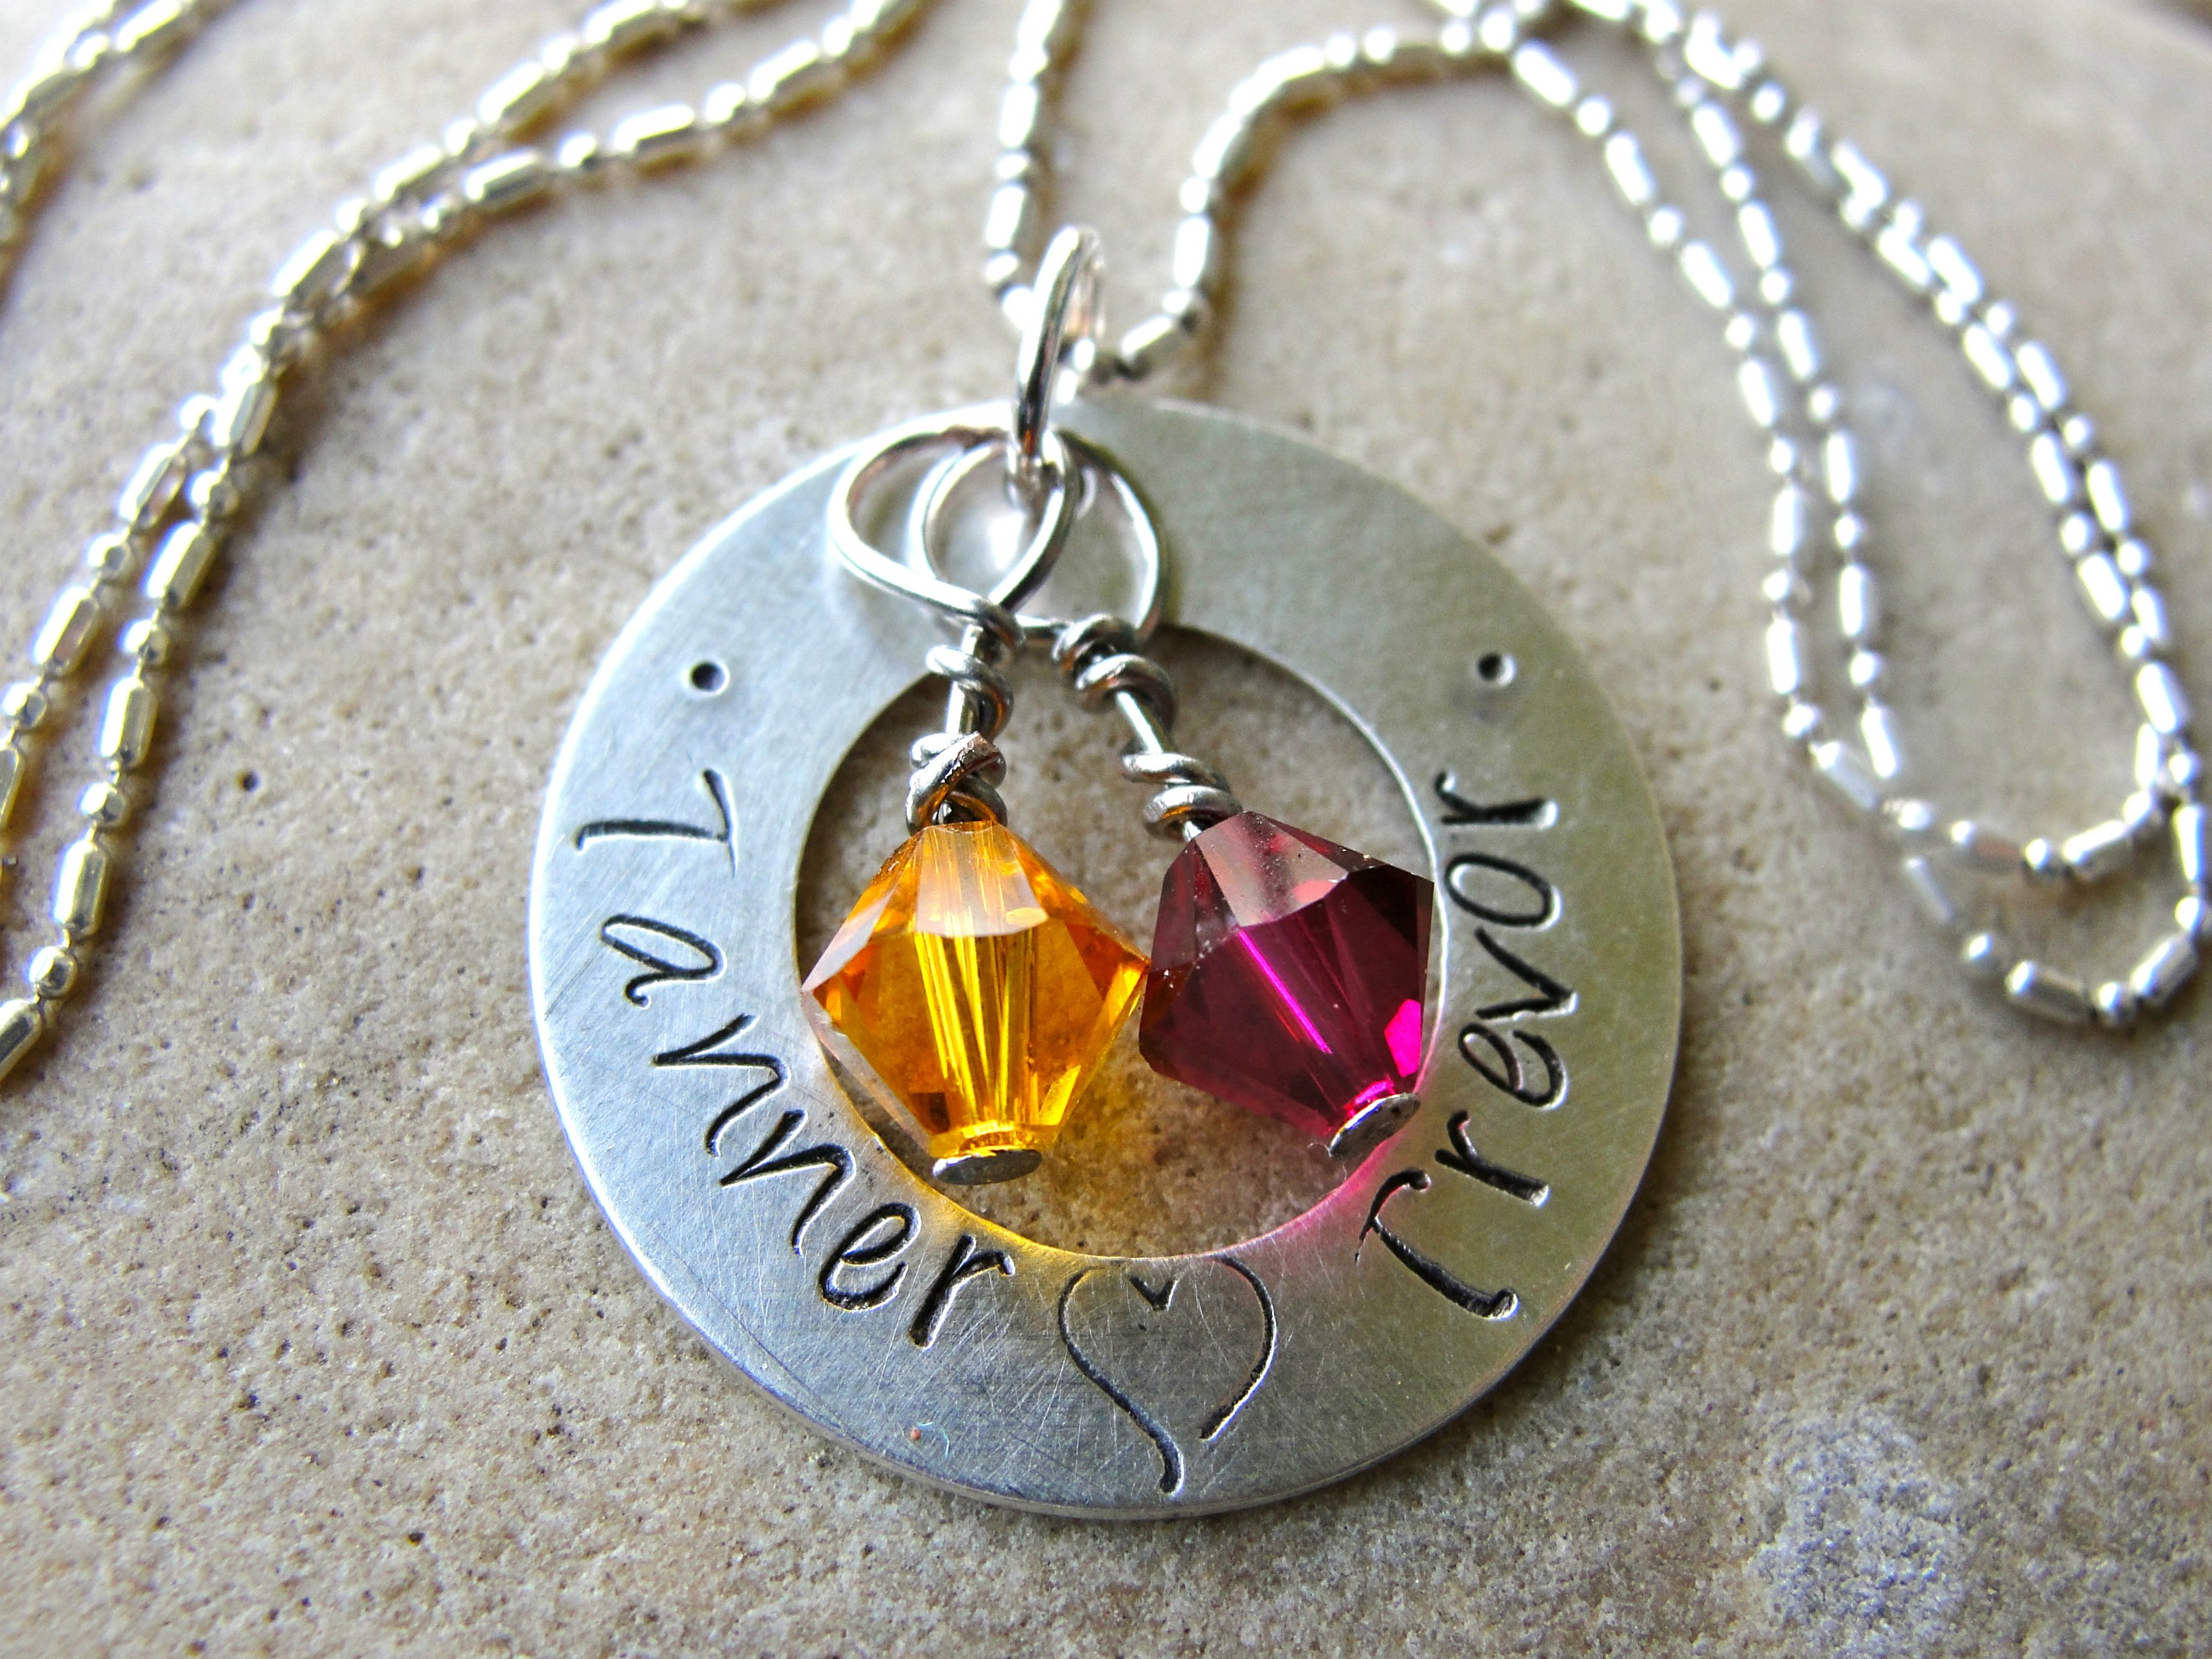 faith necklace dark pendant stamped christian shines jewellery brightest the uk products grabatie in